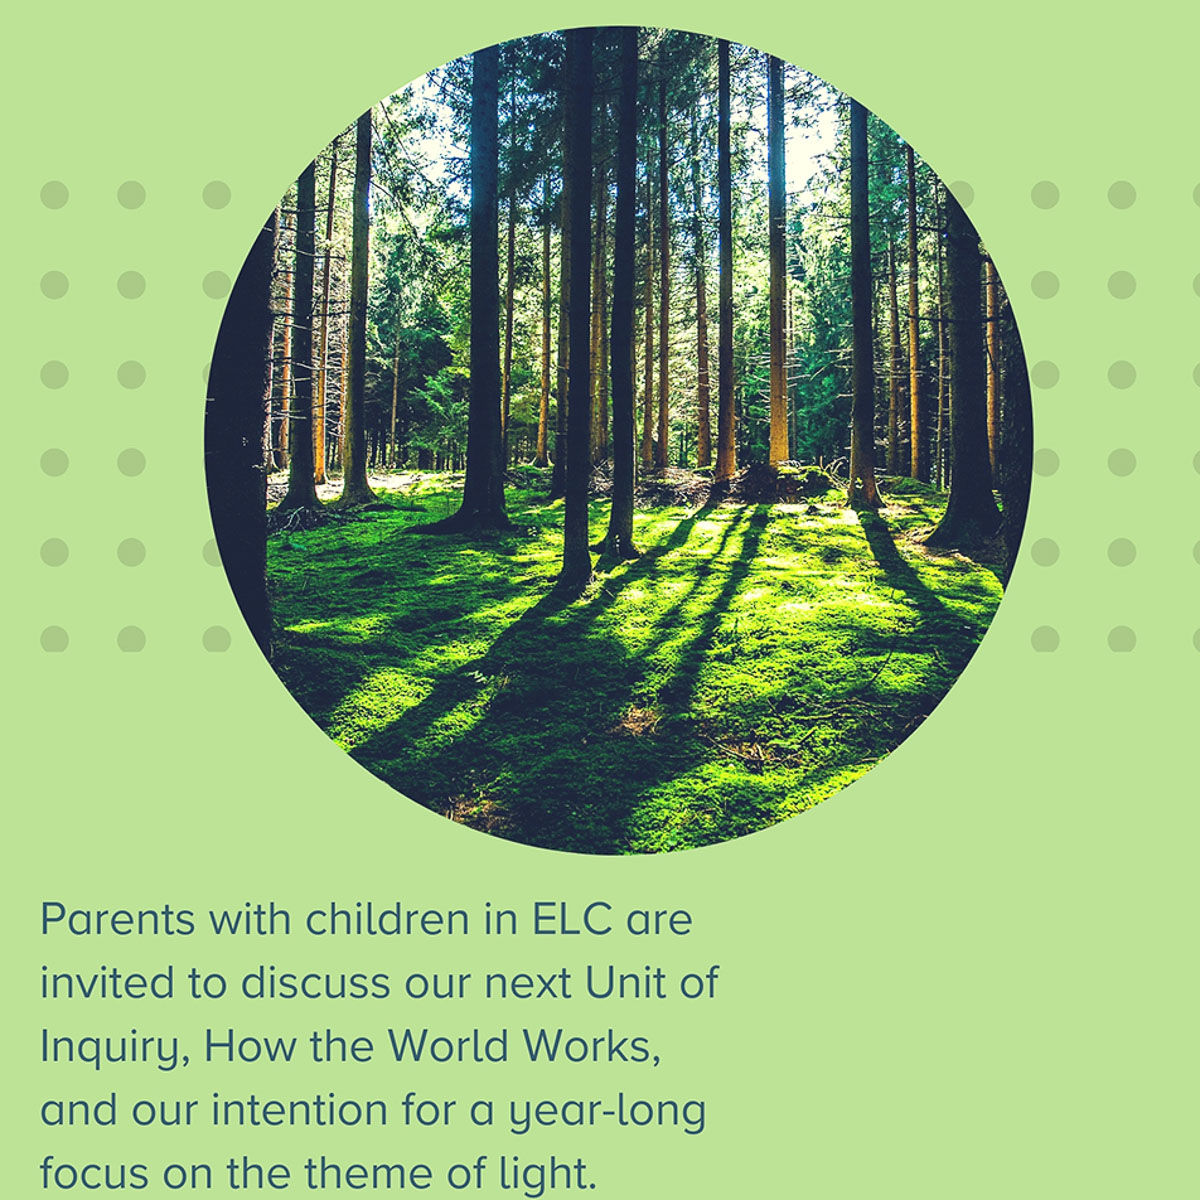 ELC Parents Session: Sharing Our Intentions